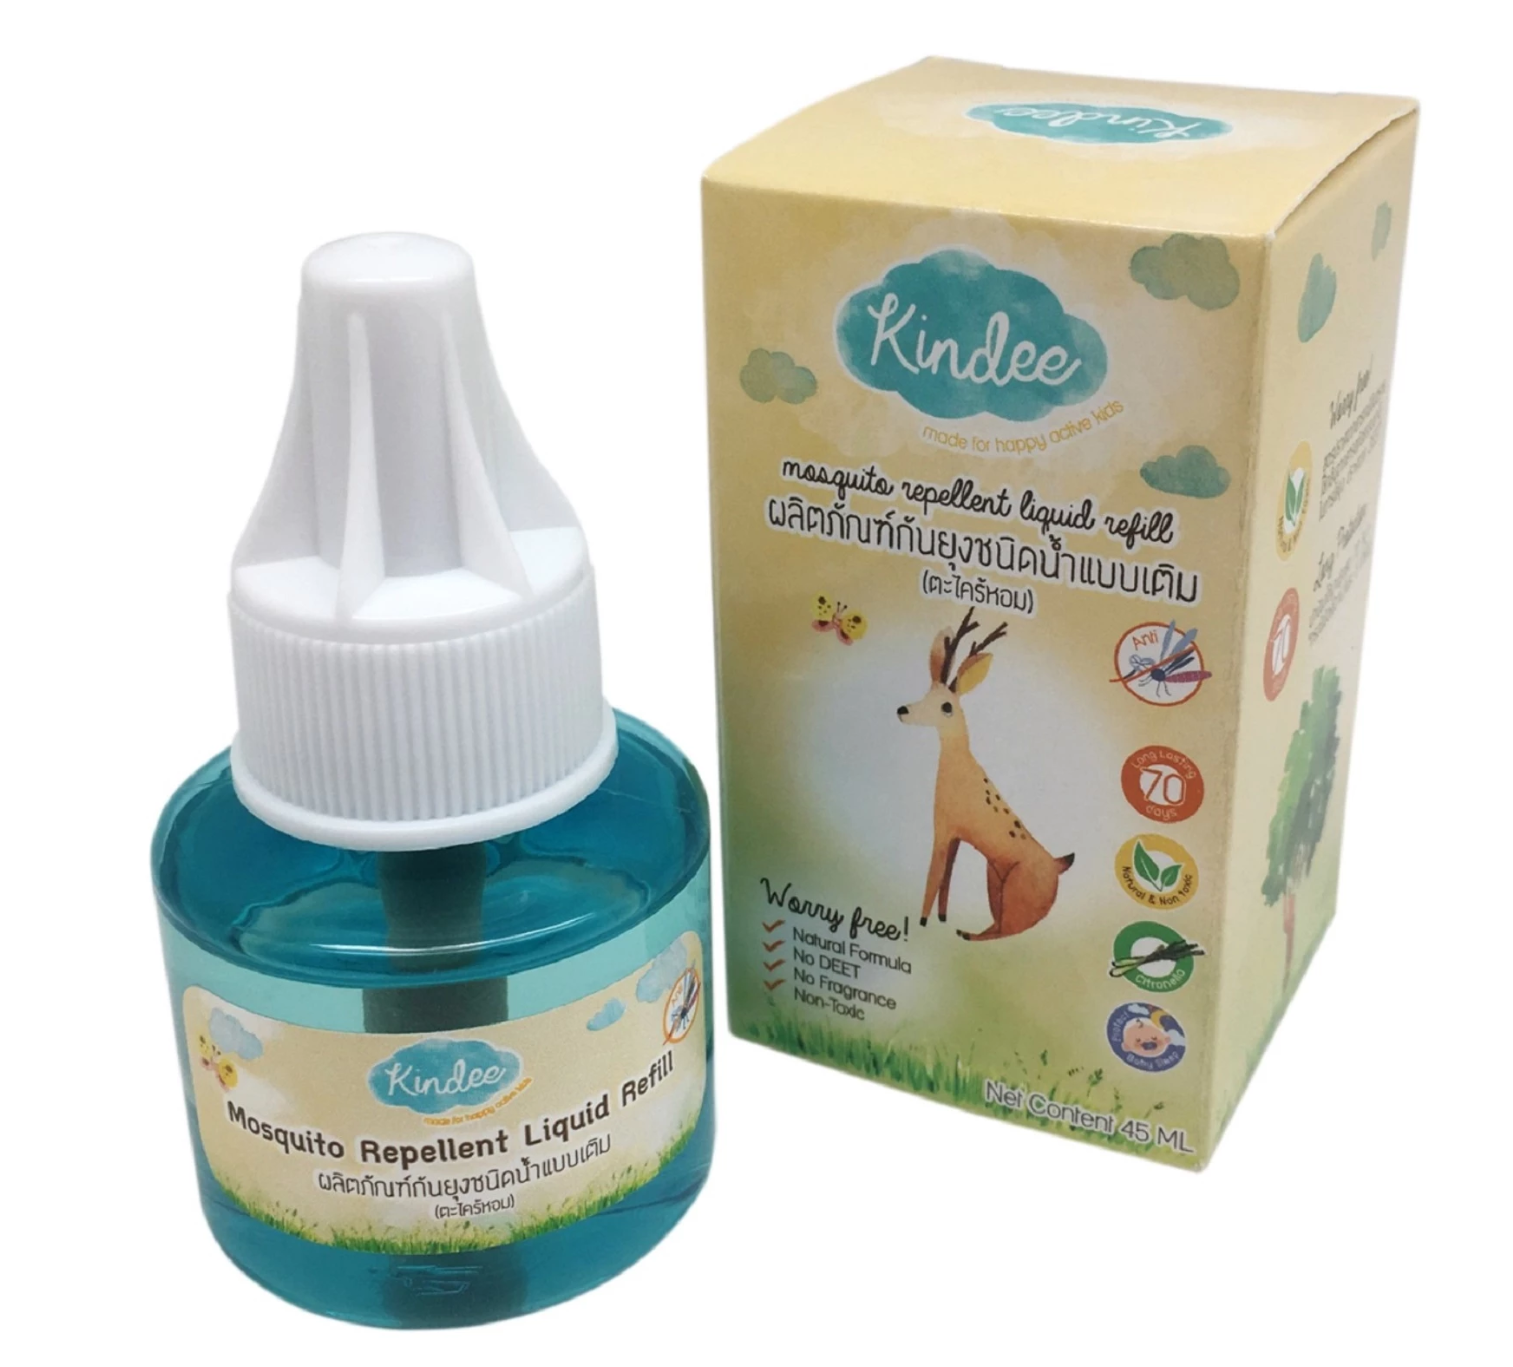 Kindee Mosquito Repellent Liquid Refill (45ml)